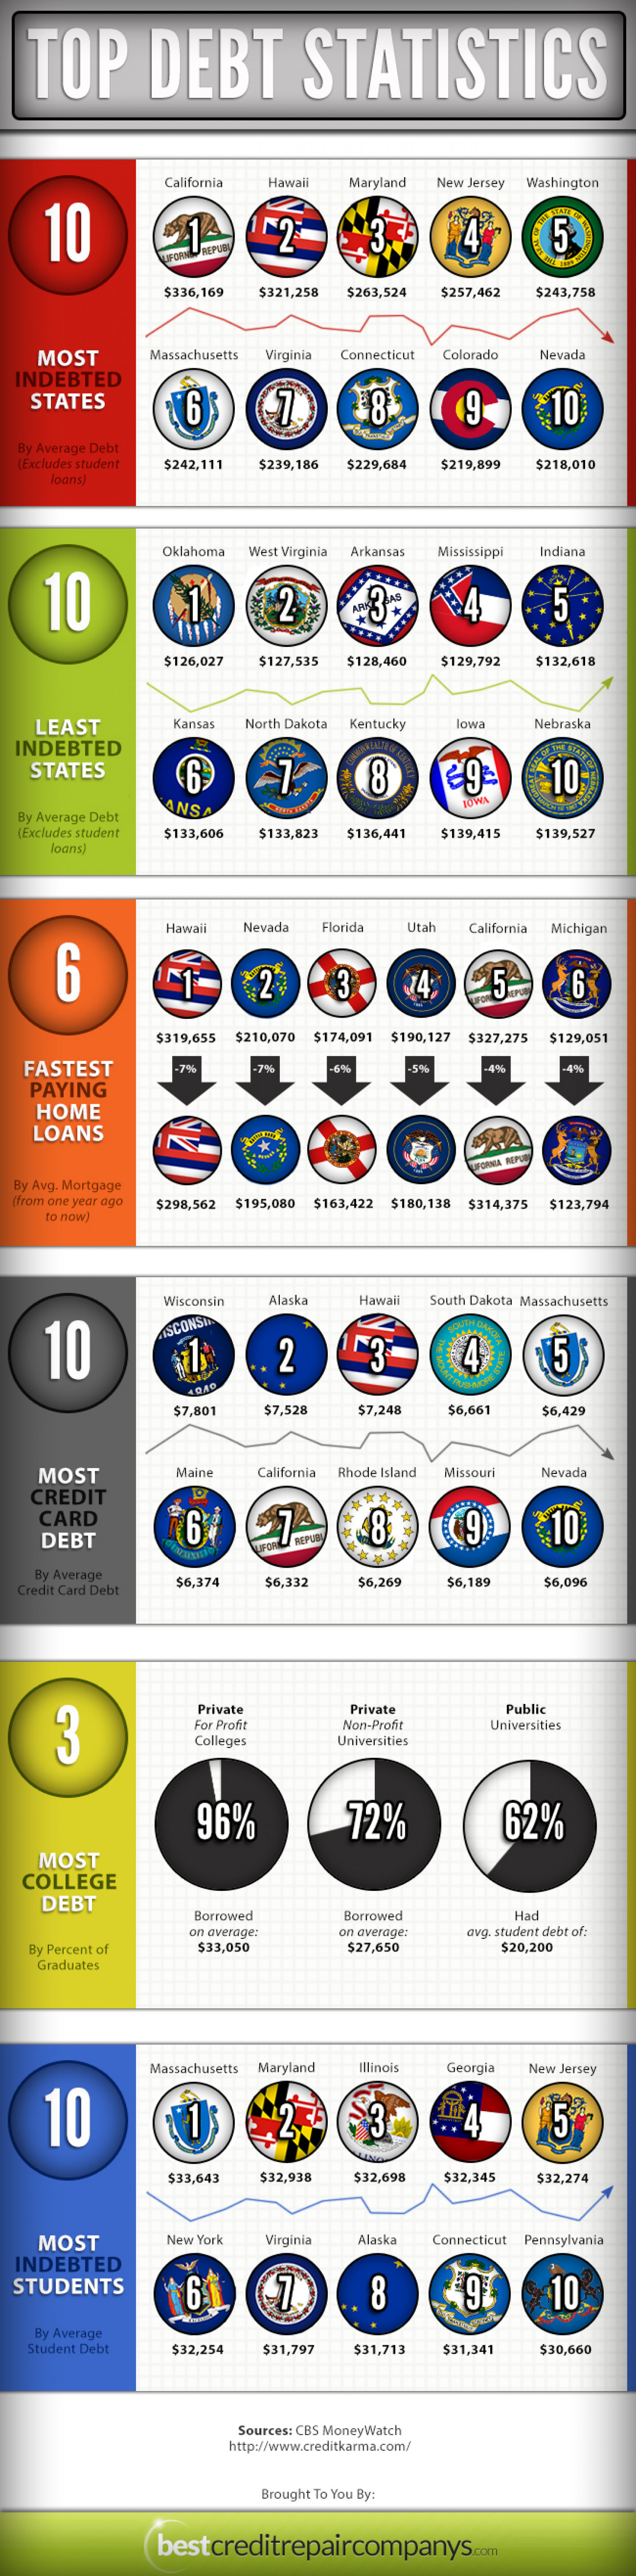 Top Debt Statistics  Infographic